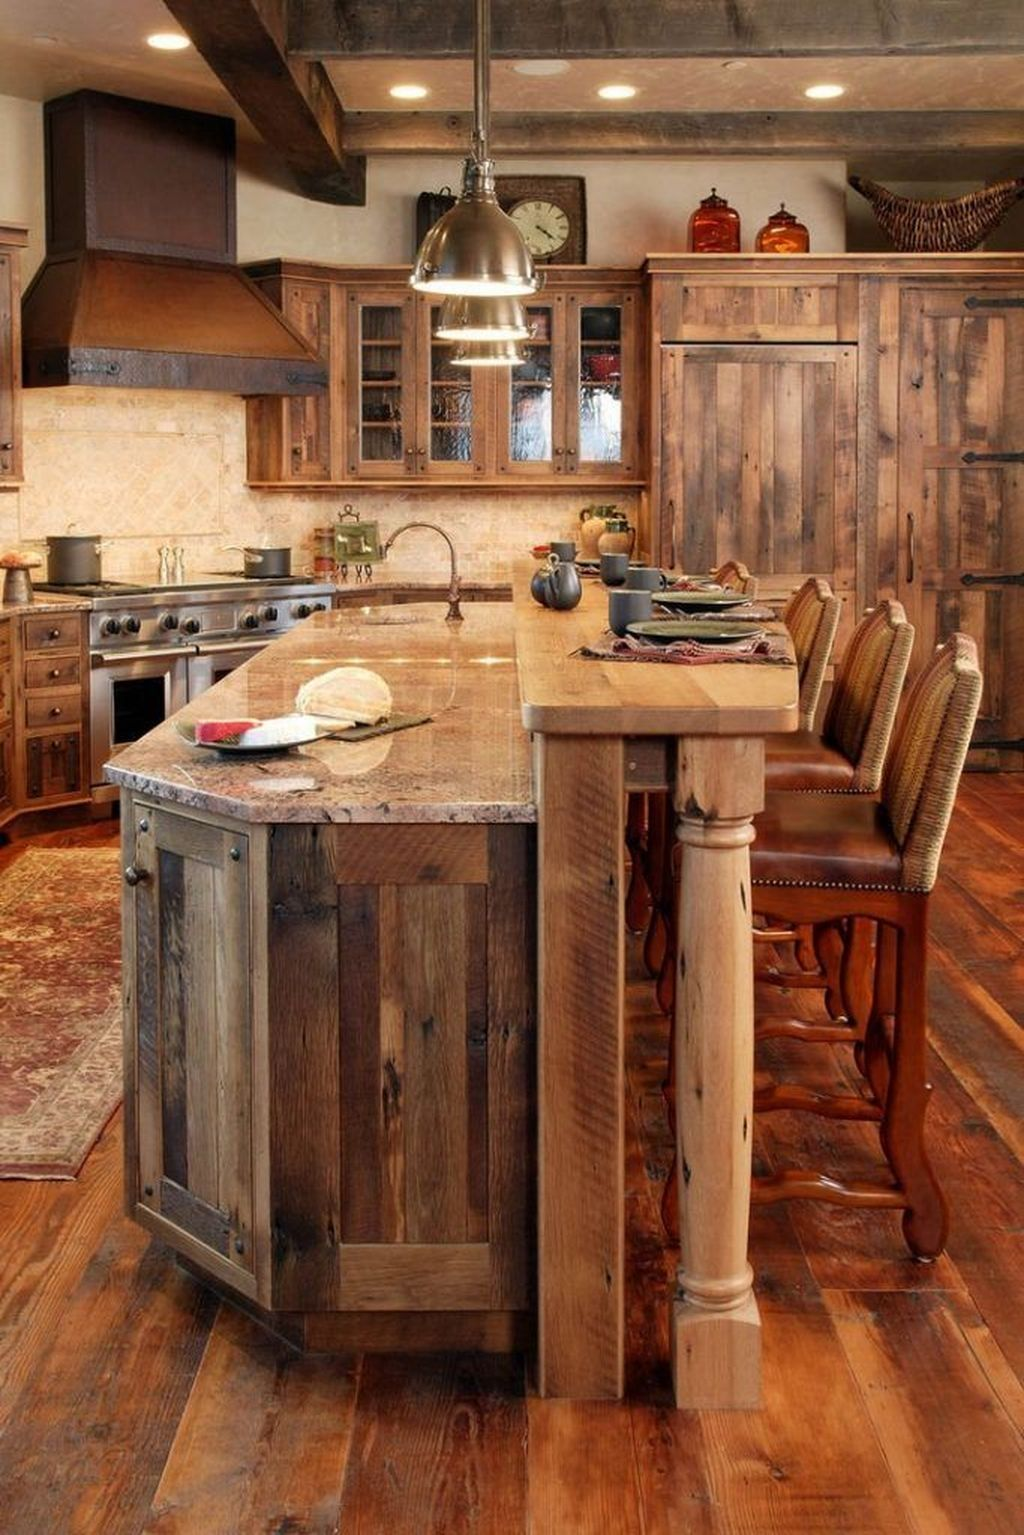 47 inspiring rustic kitchen cabinet designs for your long narrow kitchen in 2020 with images on kitchen decor themes rustic id=45645